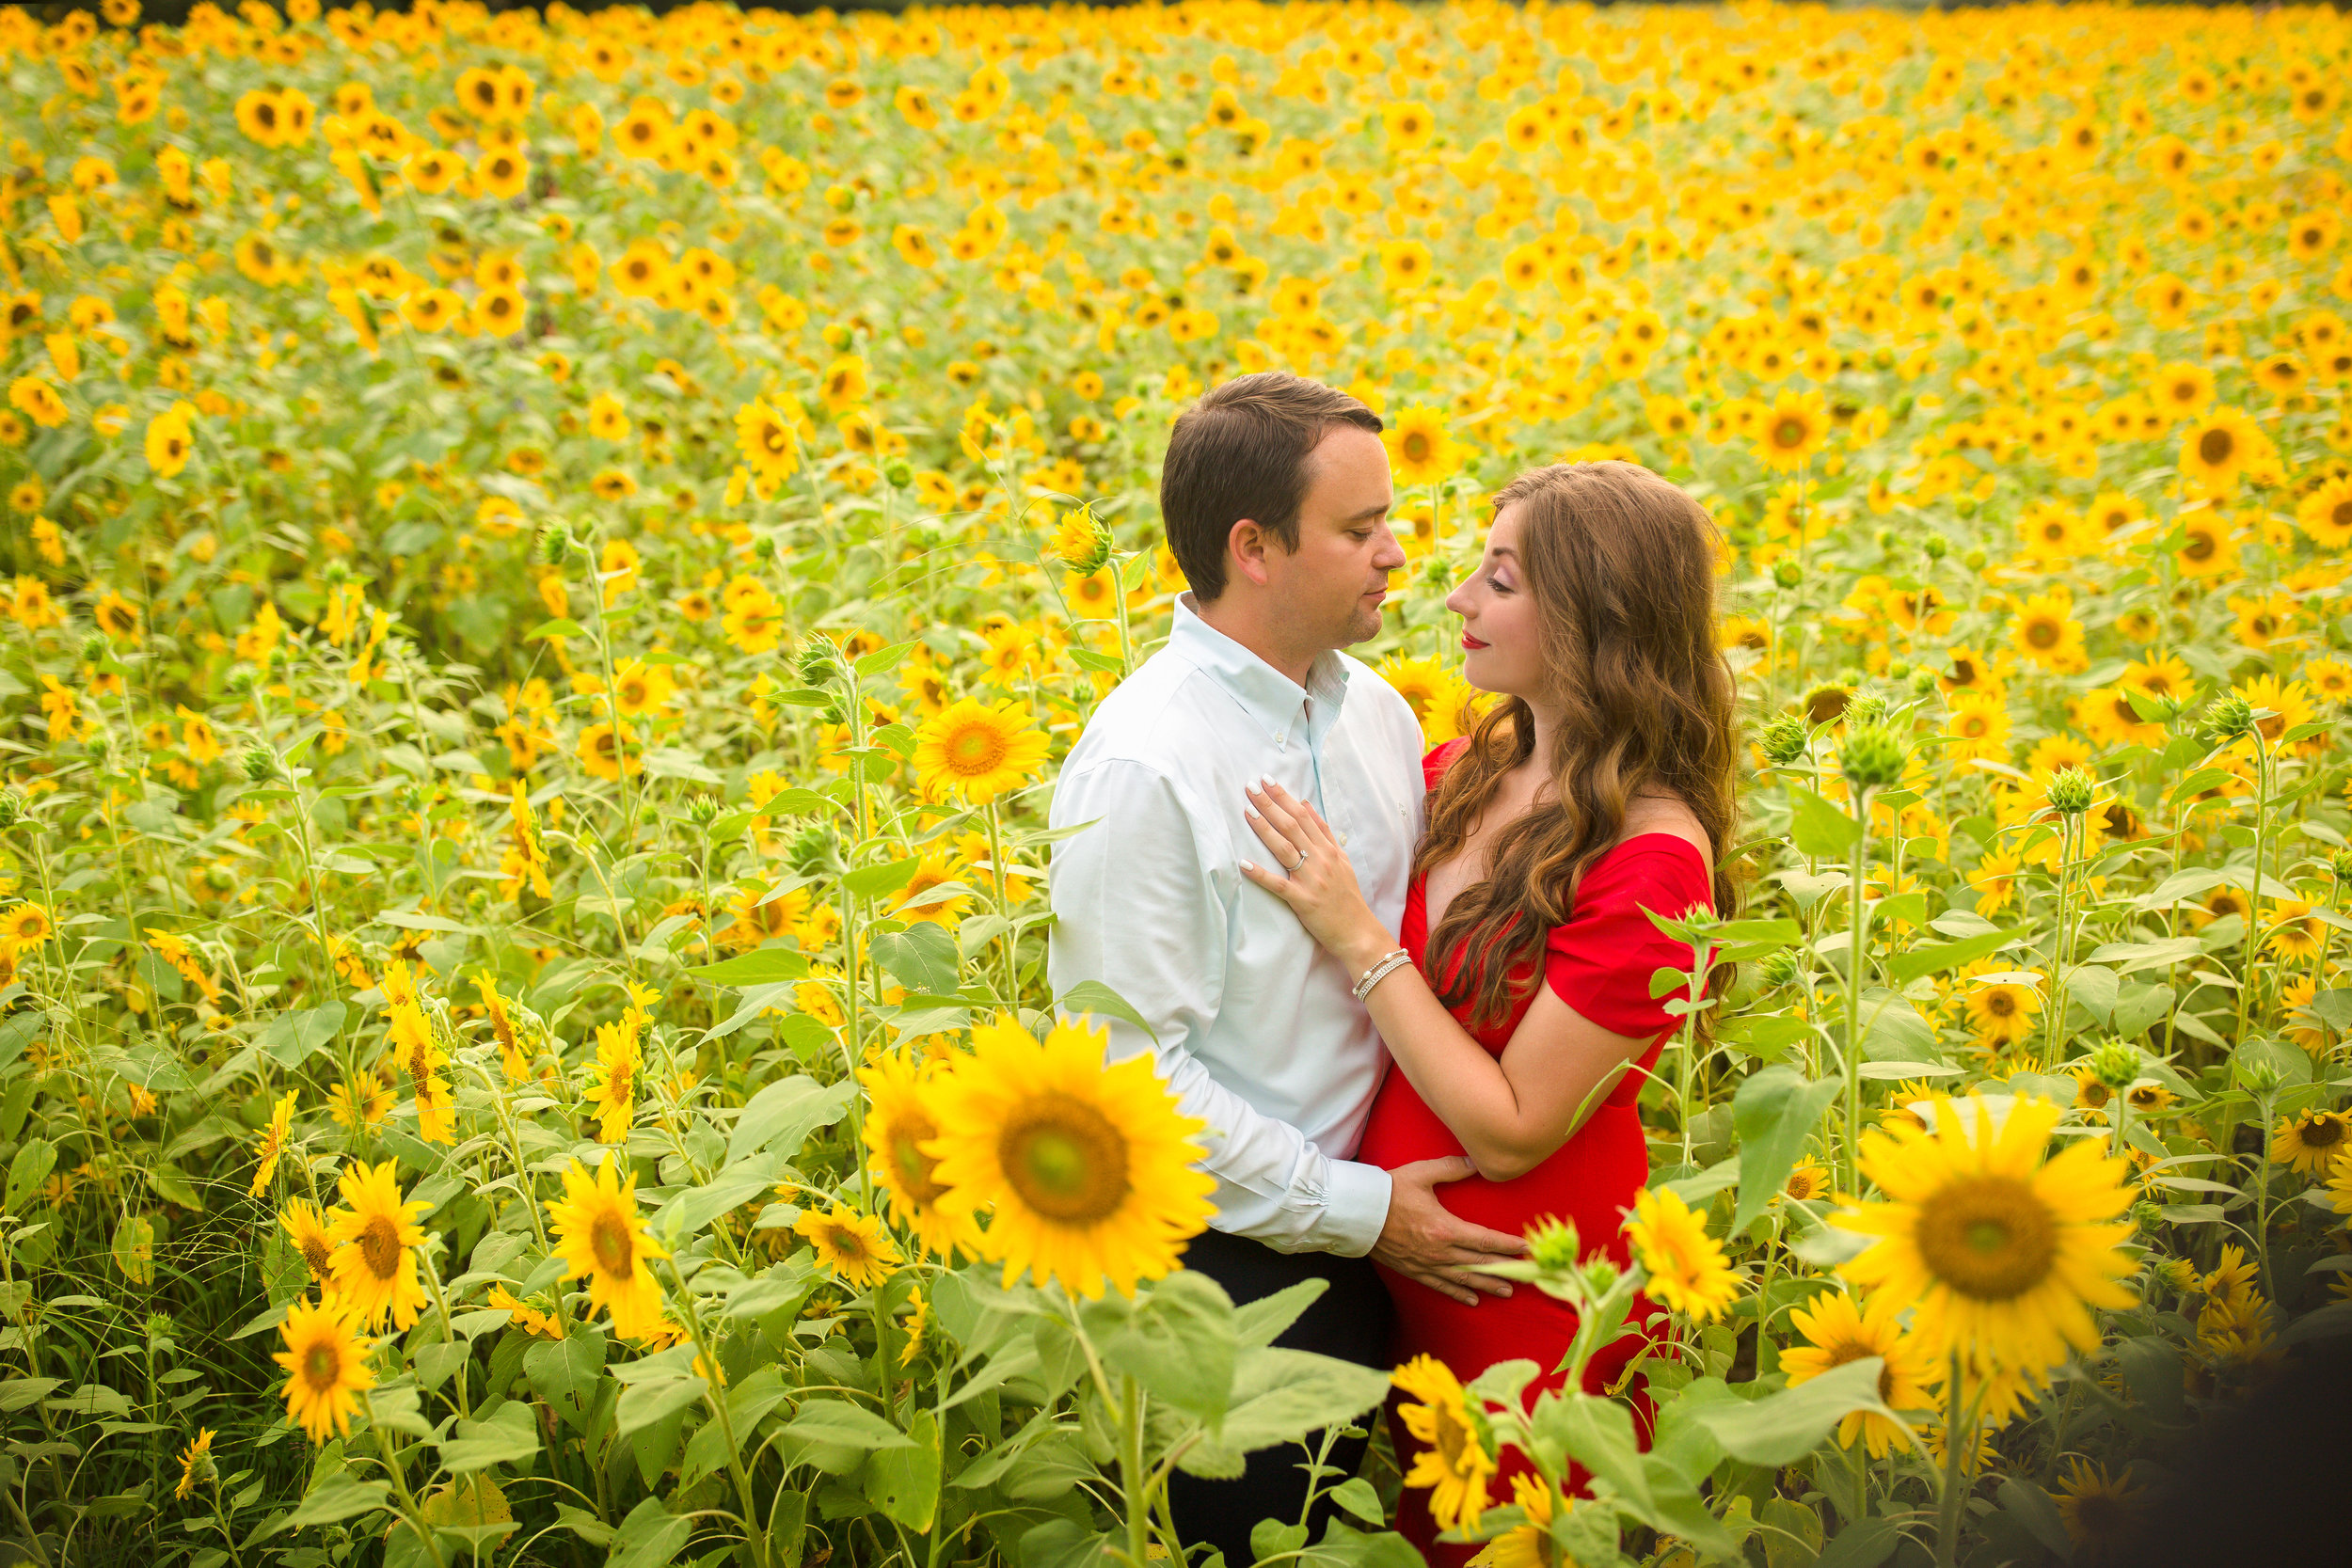 Alexis-&-Quent-Sunflower-Maternity-Nashville-Maternity-Photographer-Chelsea-Meadows-Photography-(9).jpg